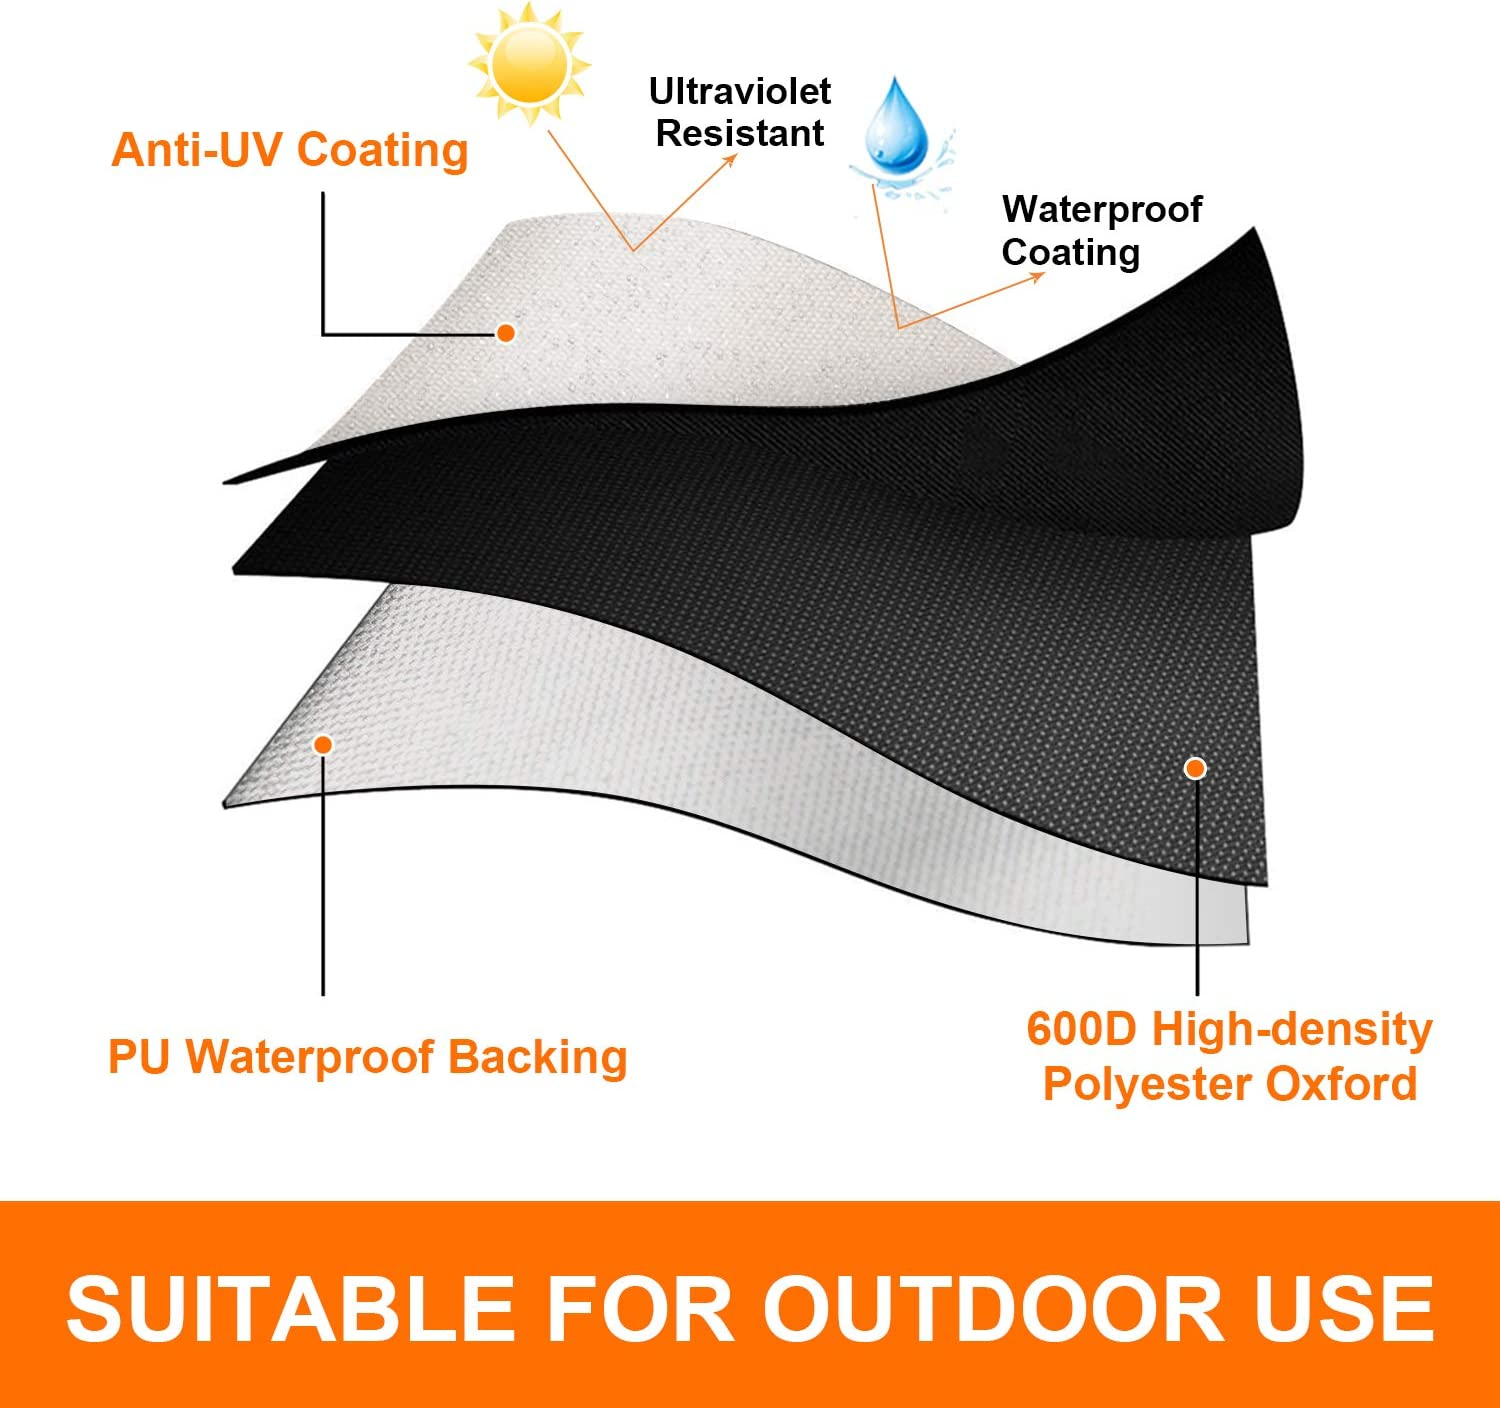 ZEJUN Patio Chair Covers Durable UV-Coated Patio Sofa Cover 36Lx39Dx29H 600D Oxford Cloth Heavy Duty Outdoor Furniture Covers 2 Pack 36 inch 100/% Waterproof Lounge Deep Seat Cover